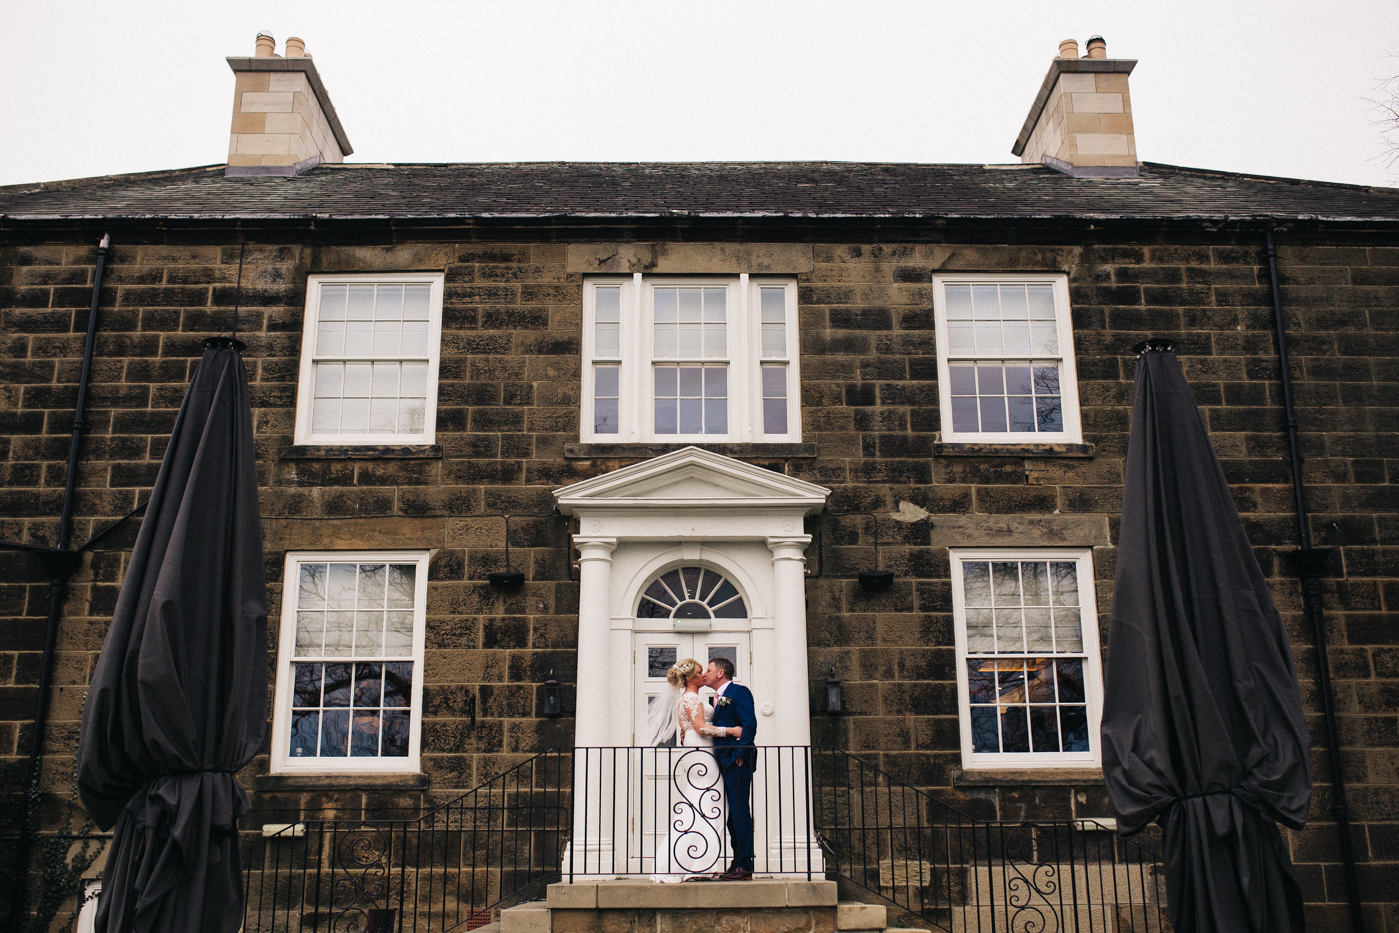 a shot of the bride and groom standing on the steps outside the venue. cleveland tontine wedding teesside north yorkshire - relaxed and creative wedding photographer